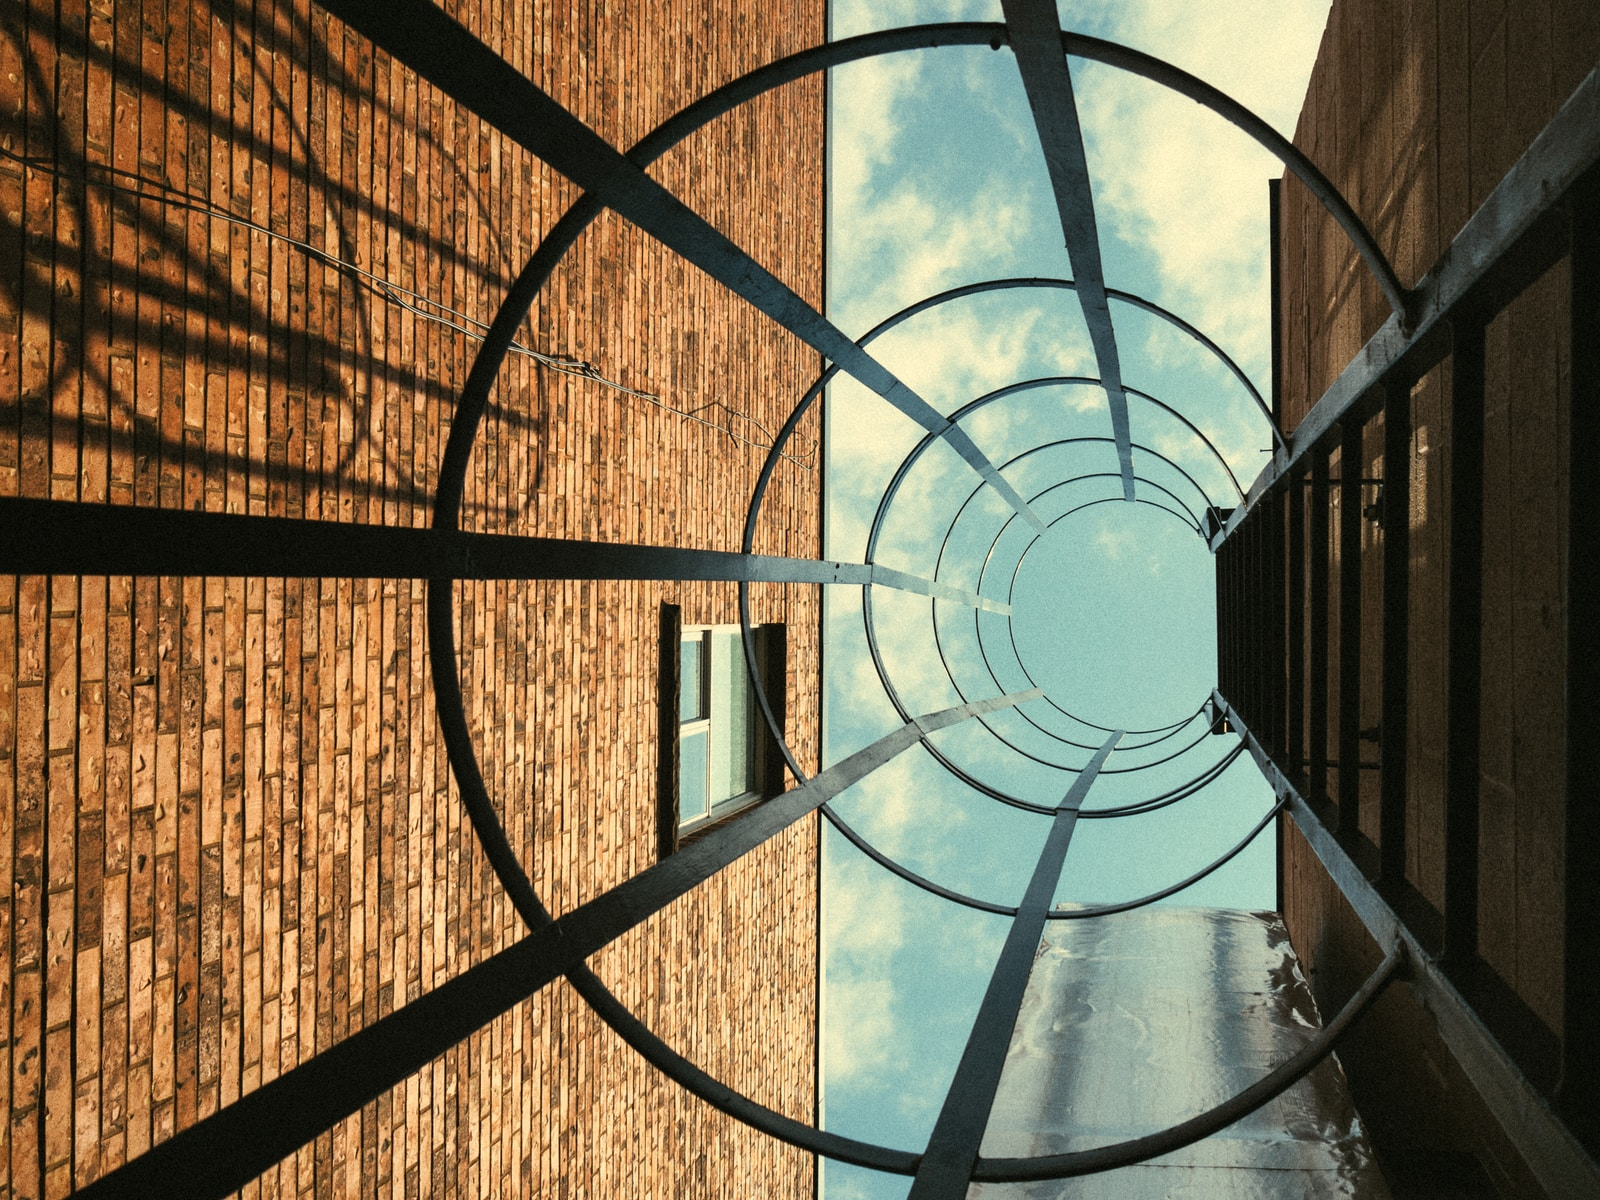 worm's eyeview photo of round metal building ladder